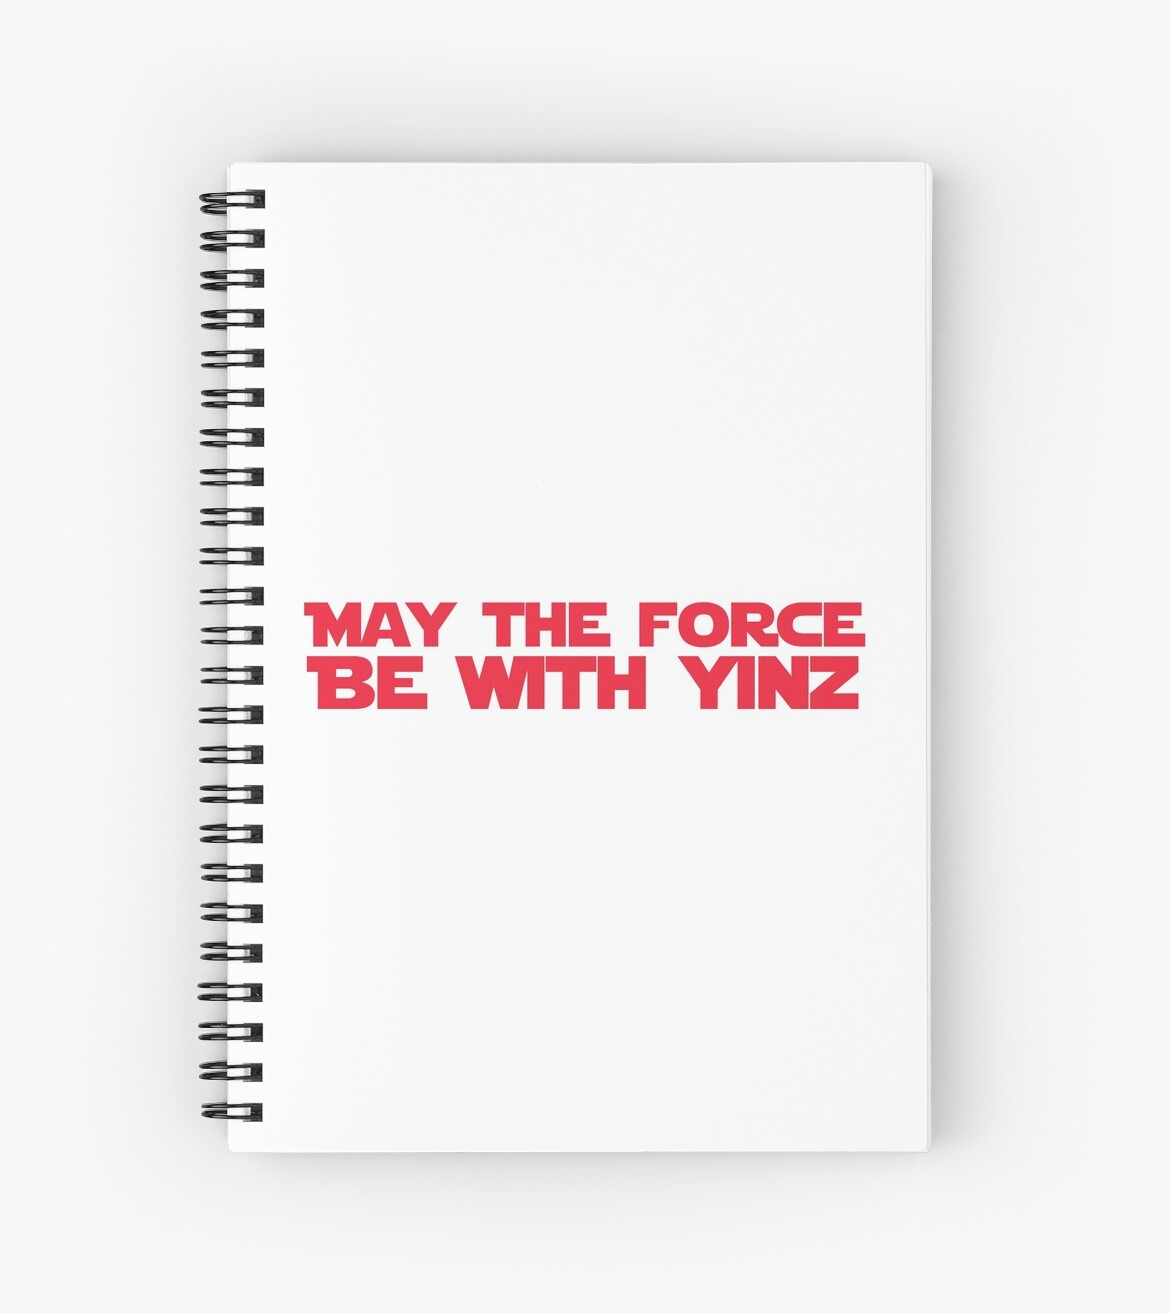 STAR WARS - May The Force Be With Yinz by Isaac Pierpont